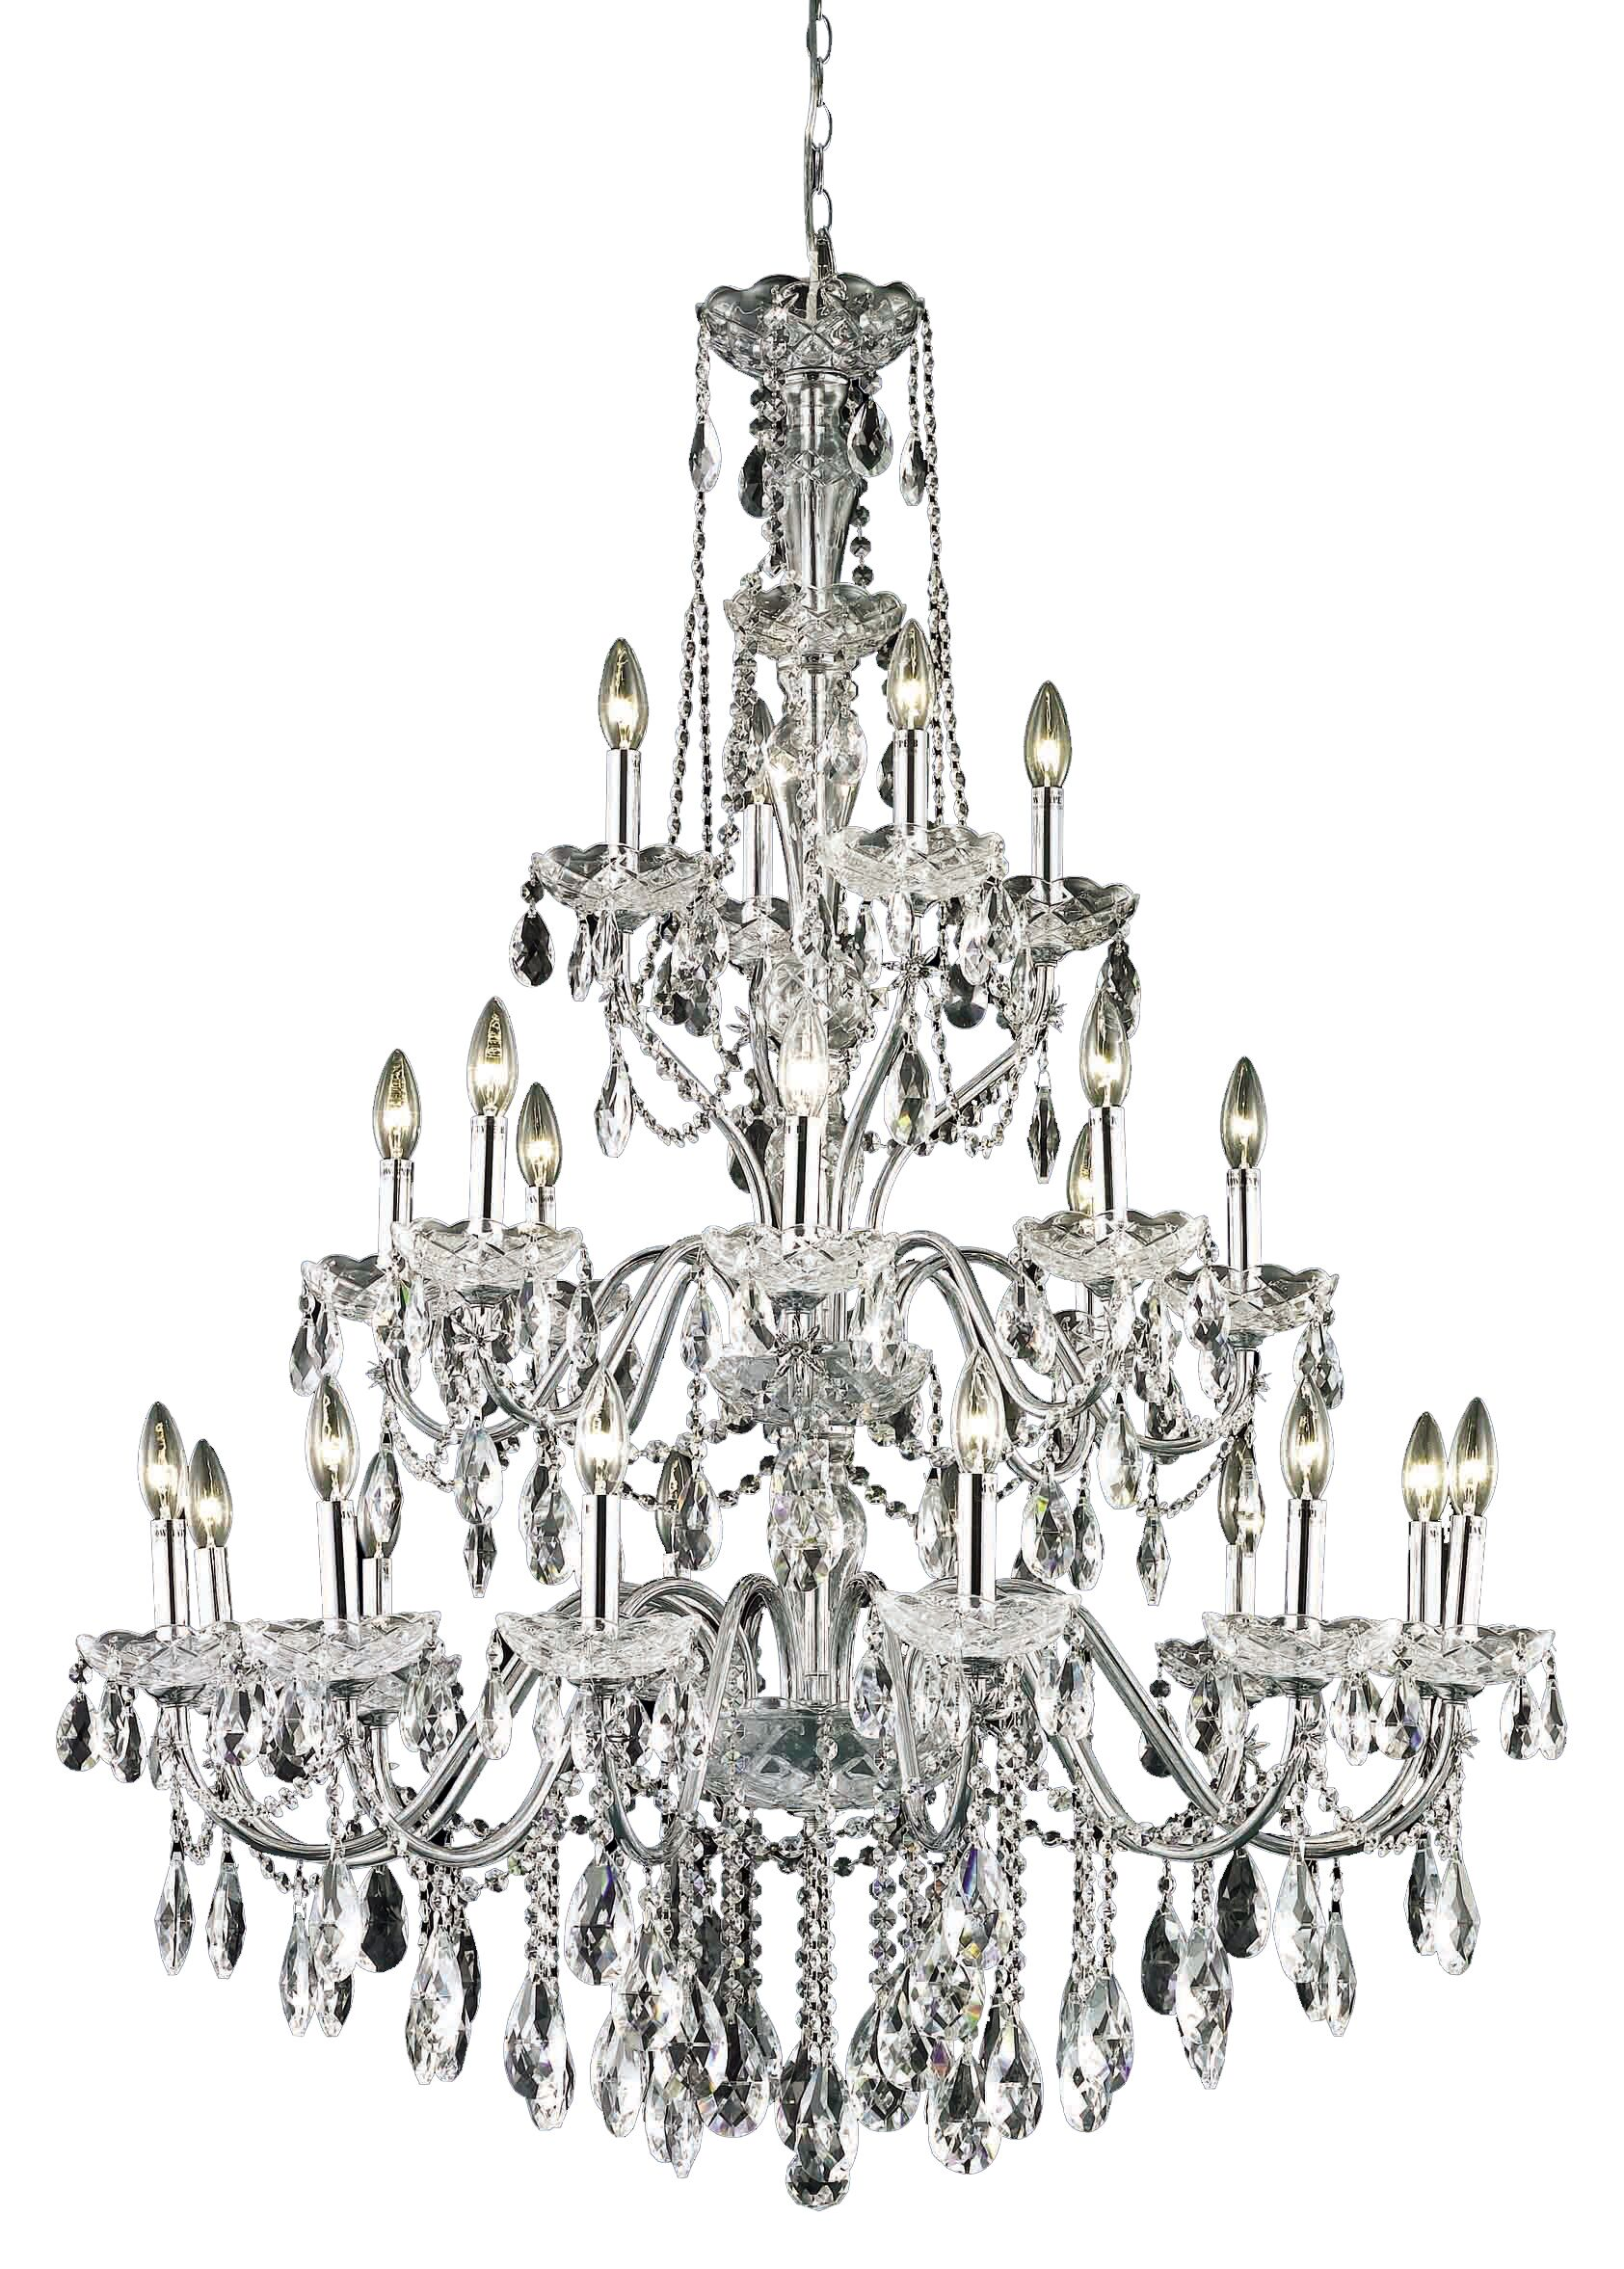 Thao 24-Light Chain Candle Style Chandelier Finish: Chrome, Crystal Grade: Spectra Swarovski